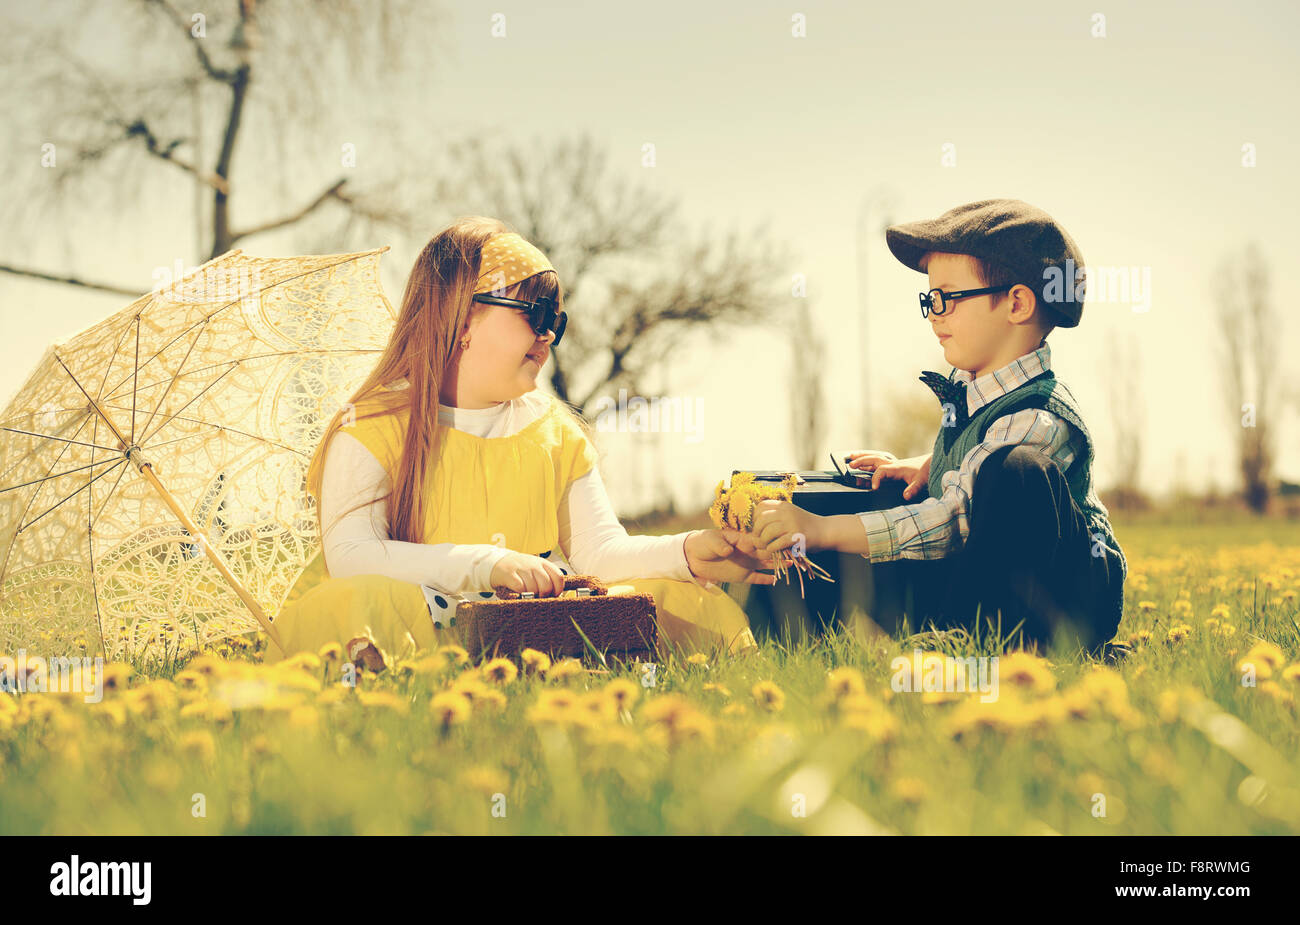 little boy courting a girl of the park in a flower meadow.vintage-look - Stock Image